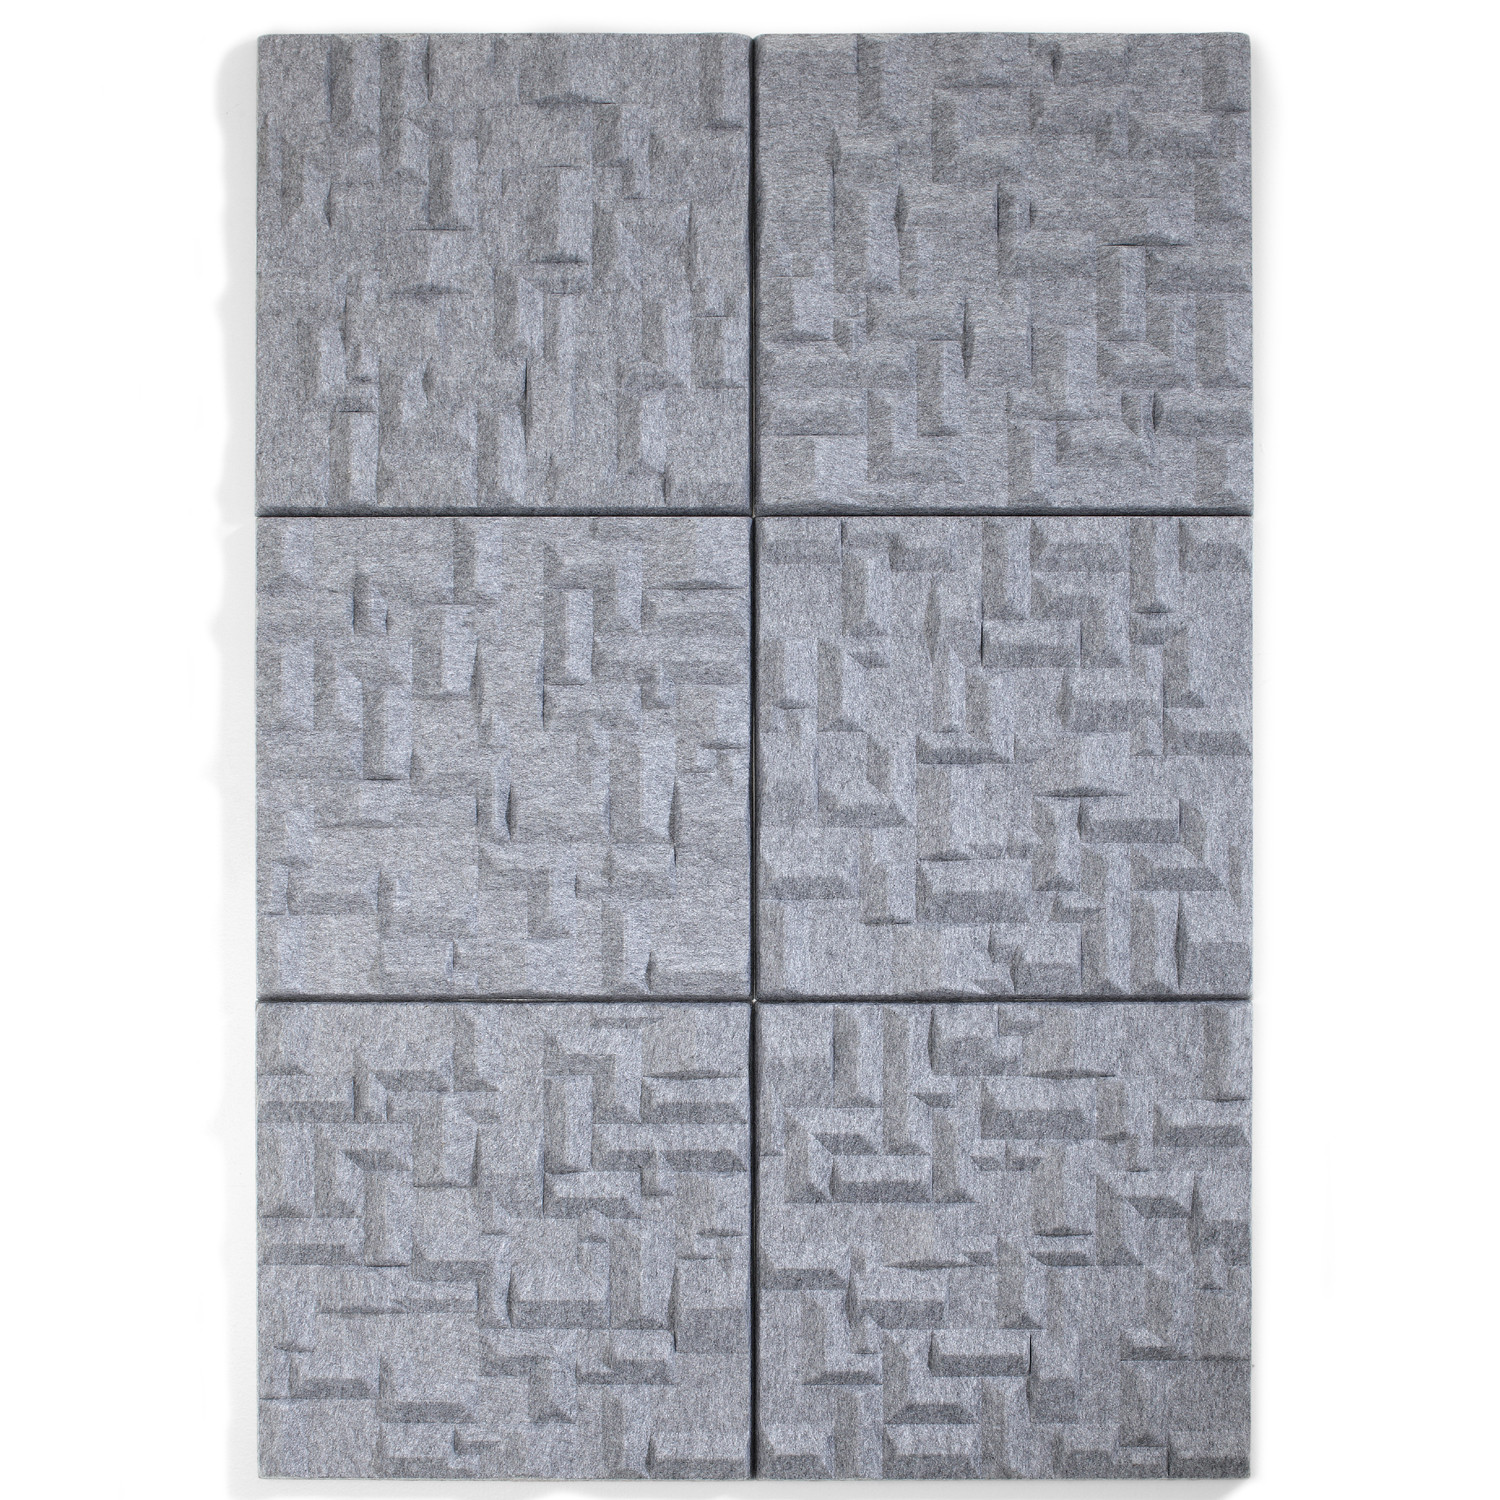 Village Acoustic Office Wall Panel